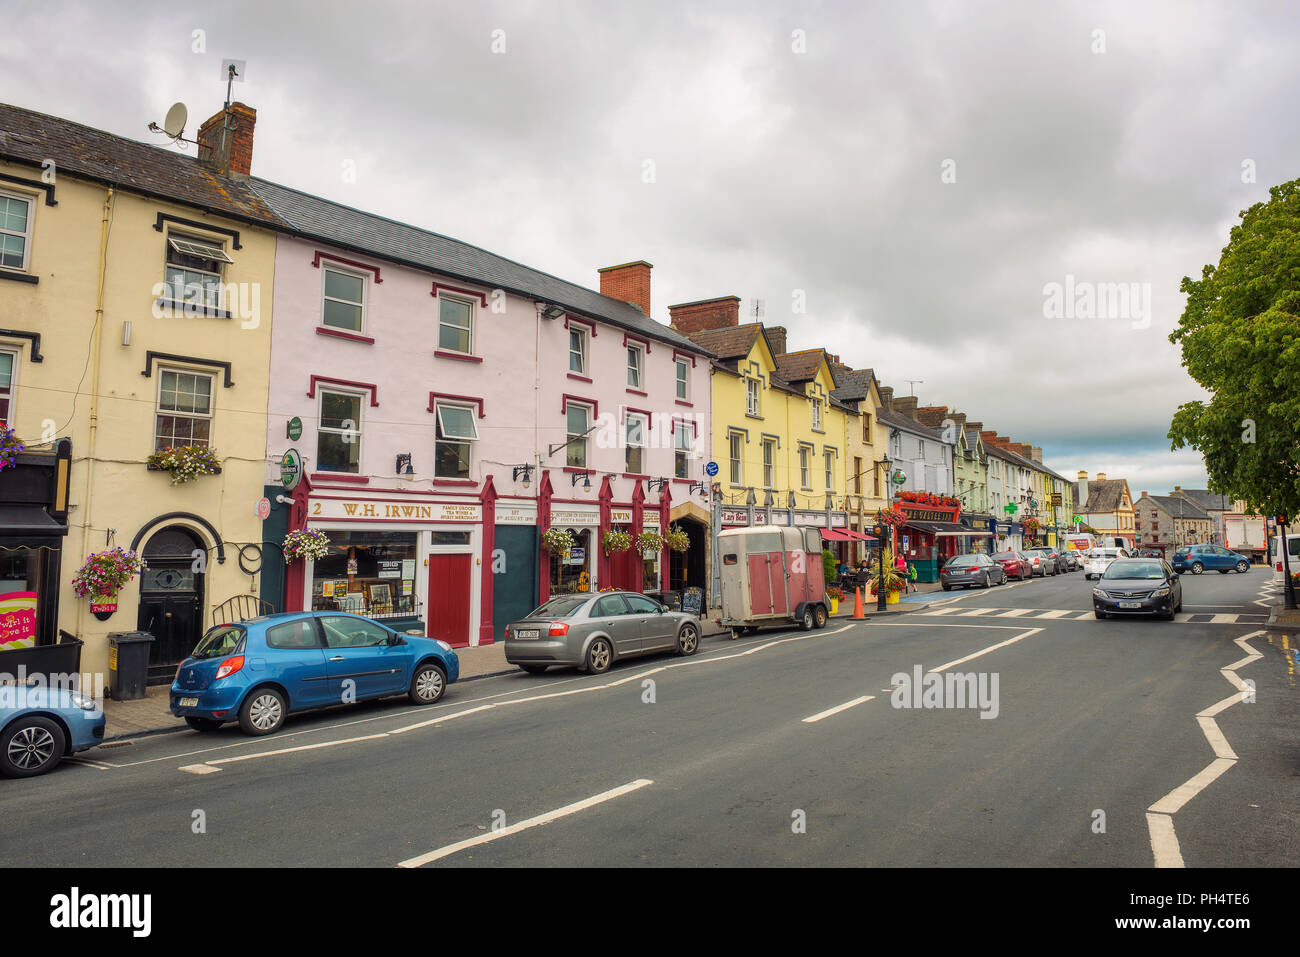 The Best Cahir Hotels, Ireland (From $44) - potteriespowertransmission.co.uk